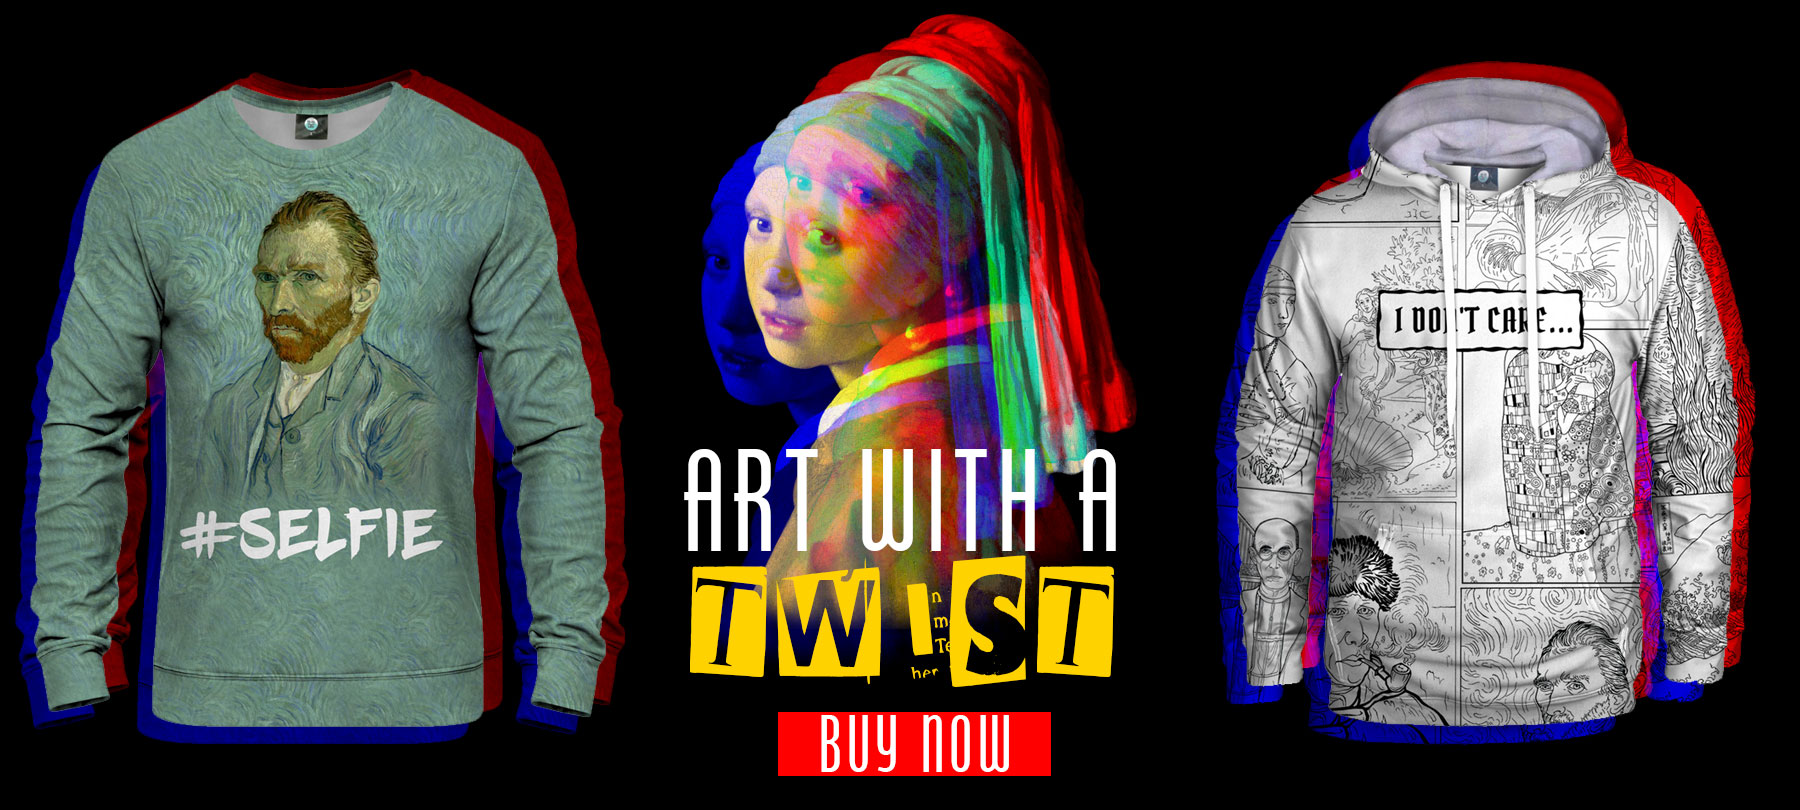 Art with a twist image